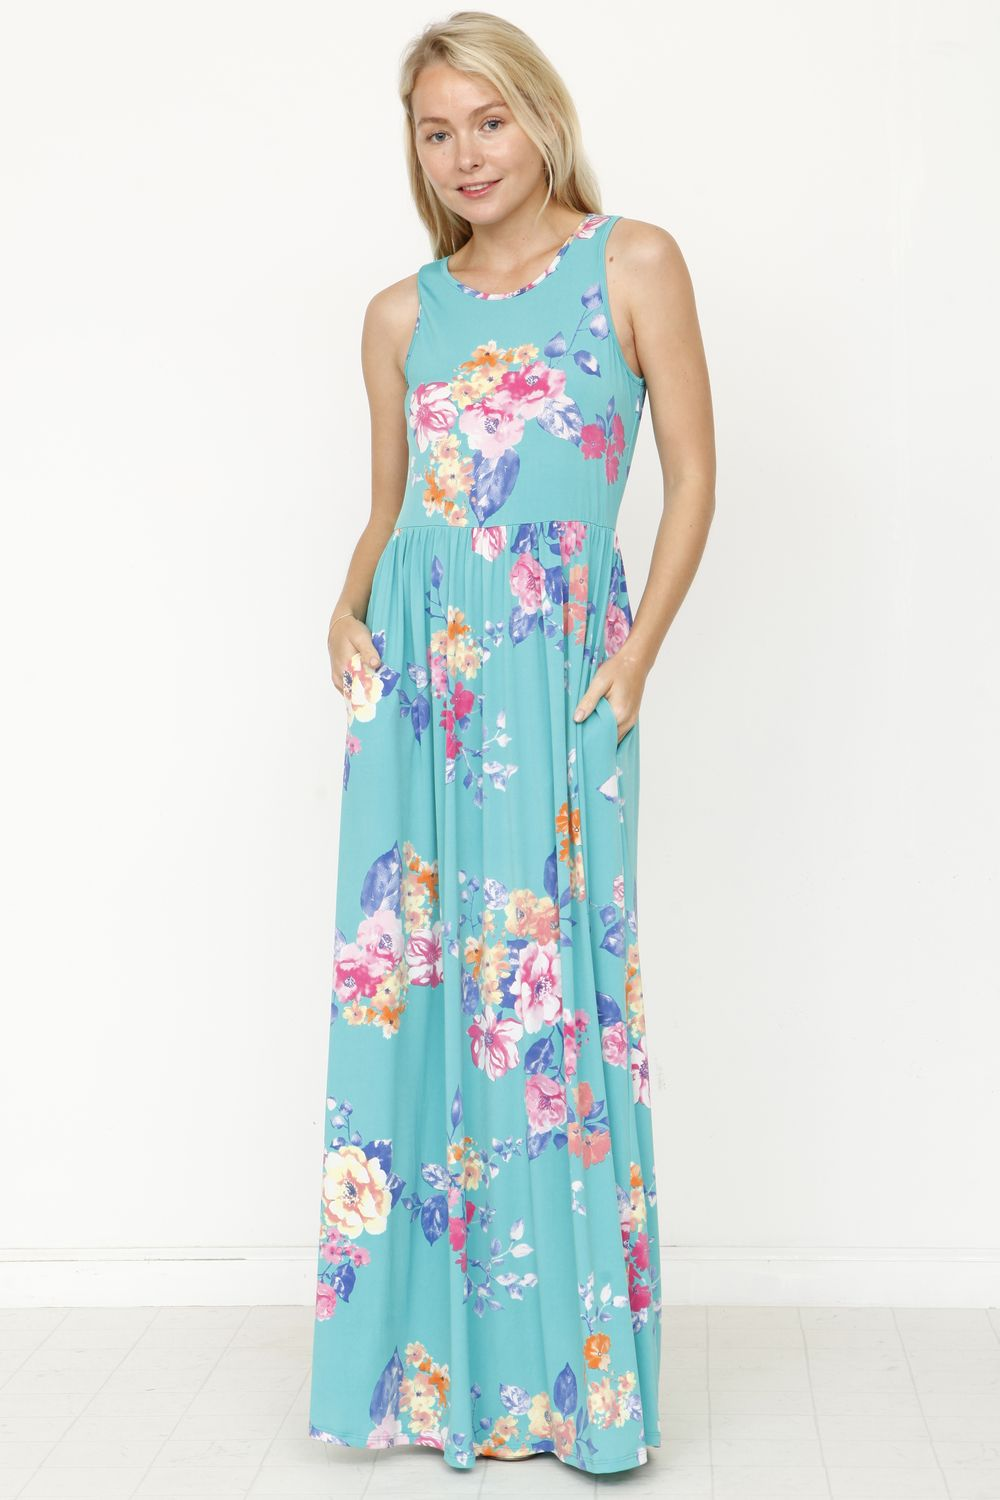 Aqua Floral Sleeveless Maxi Dress